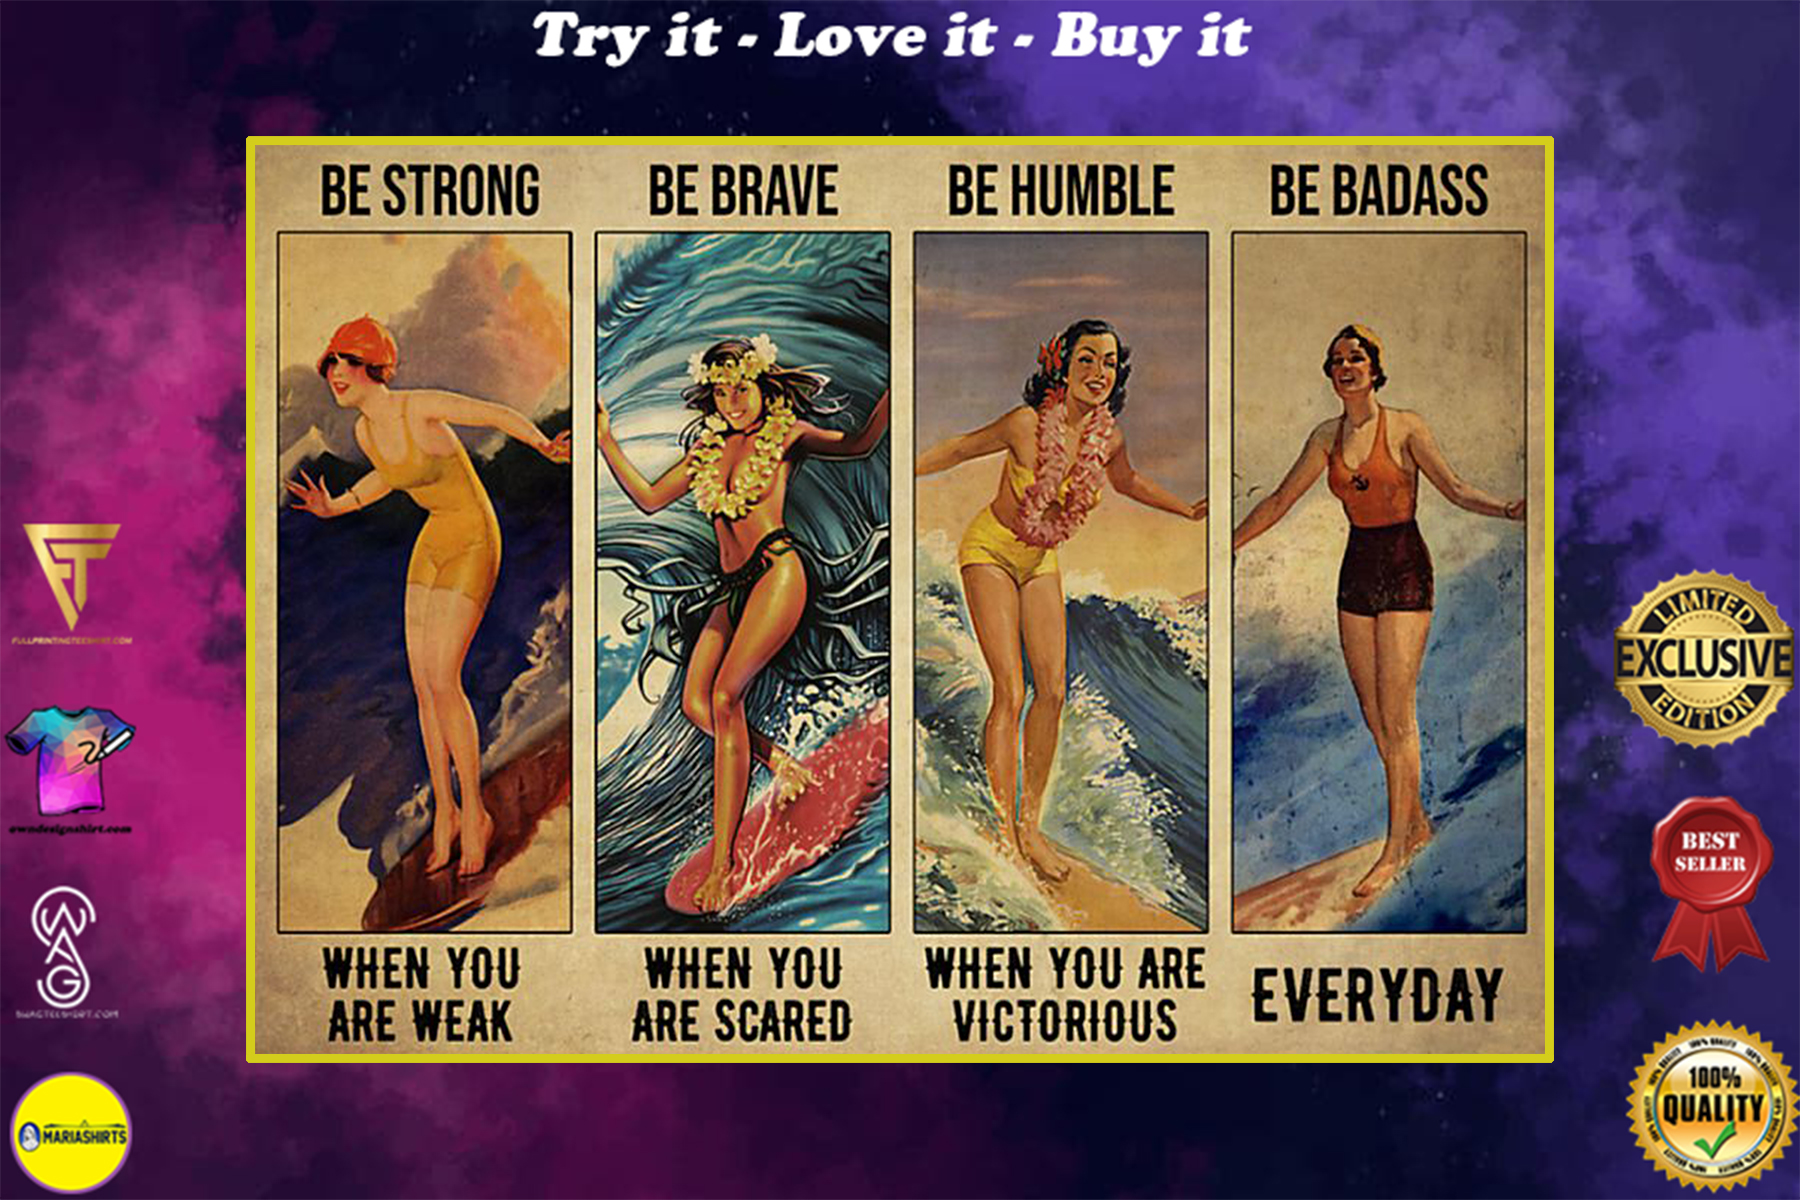 vintage surfing girl be strong when you are weak be brave when you are scared poster